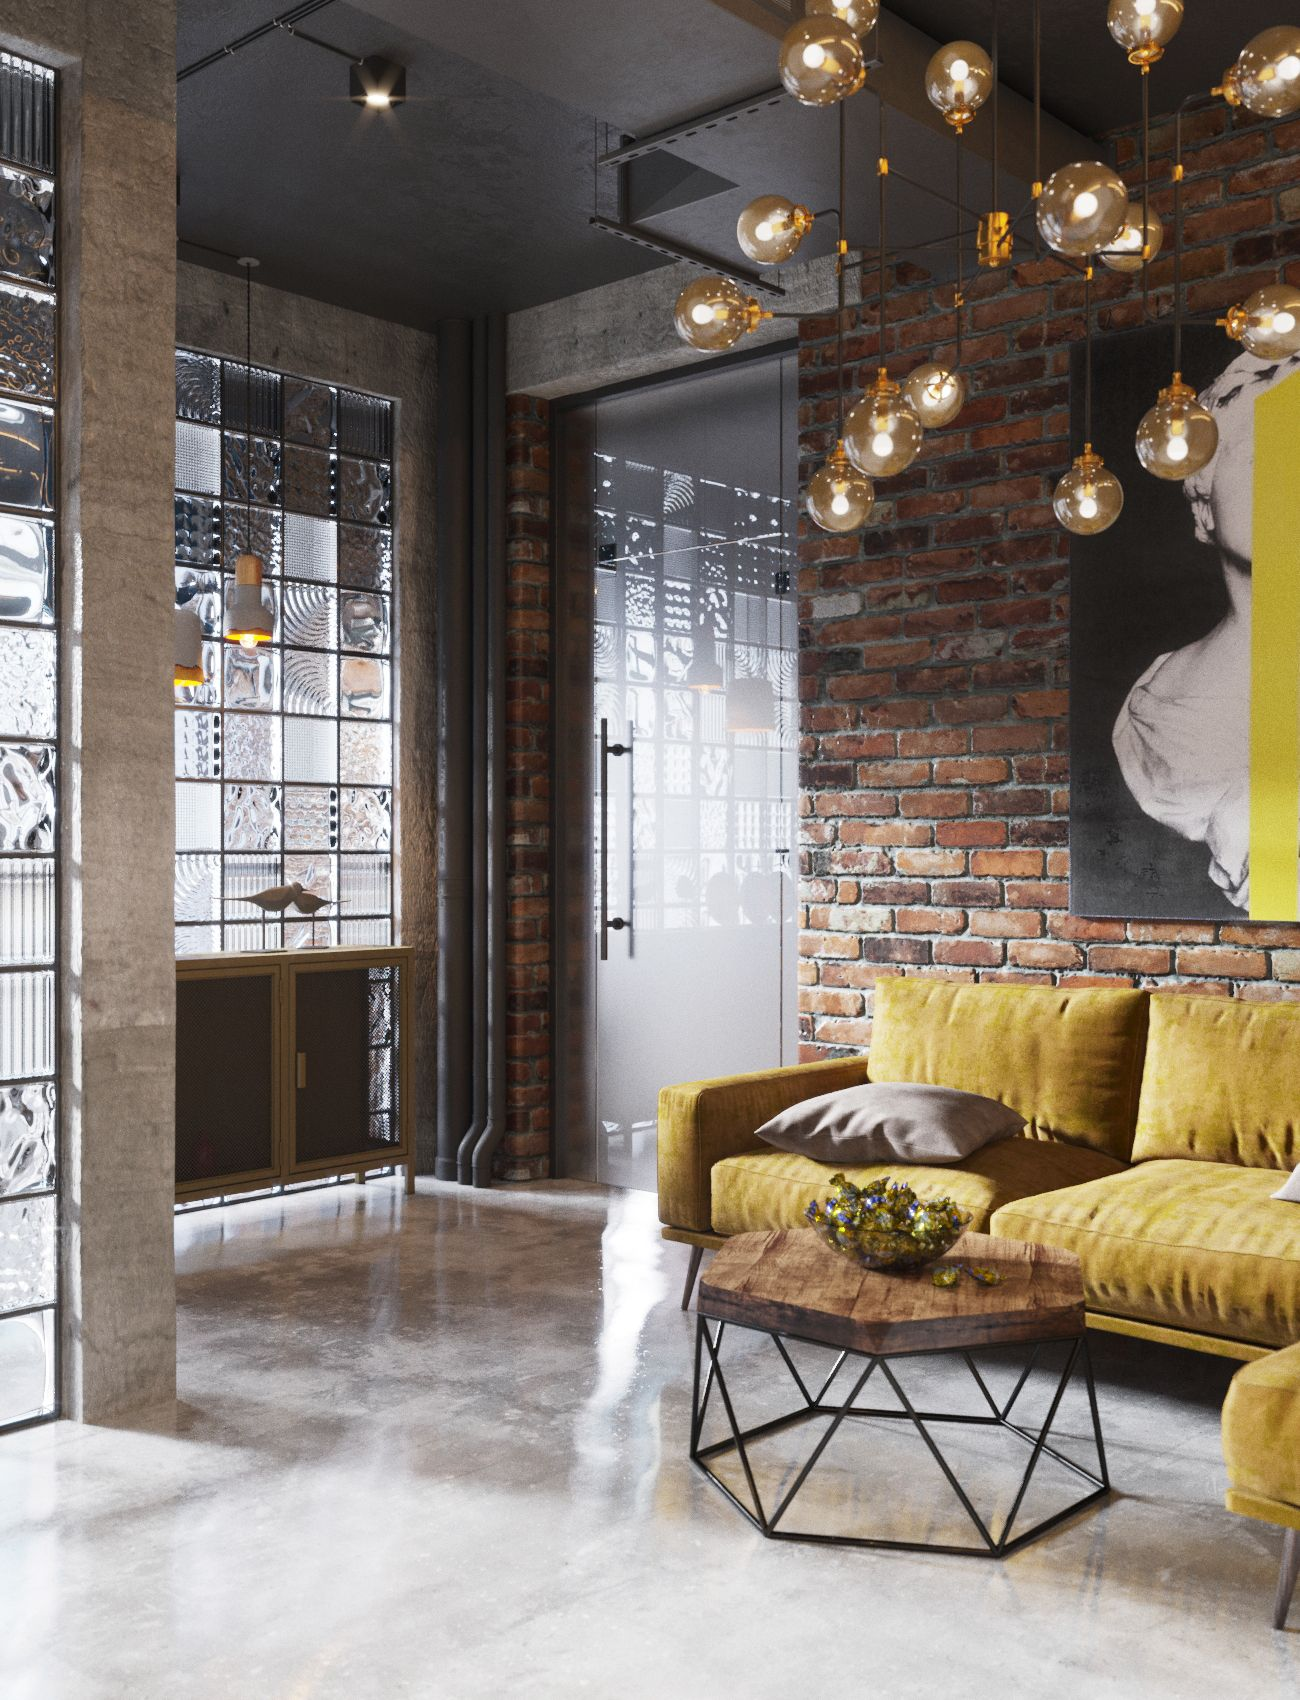 New Project For Office Spaces Loft Style On Behance Kirpichnyj